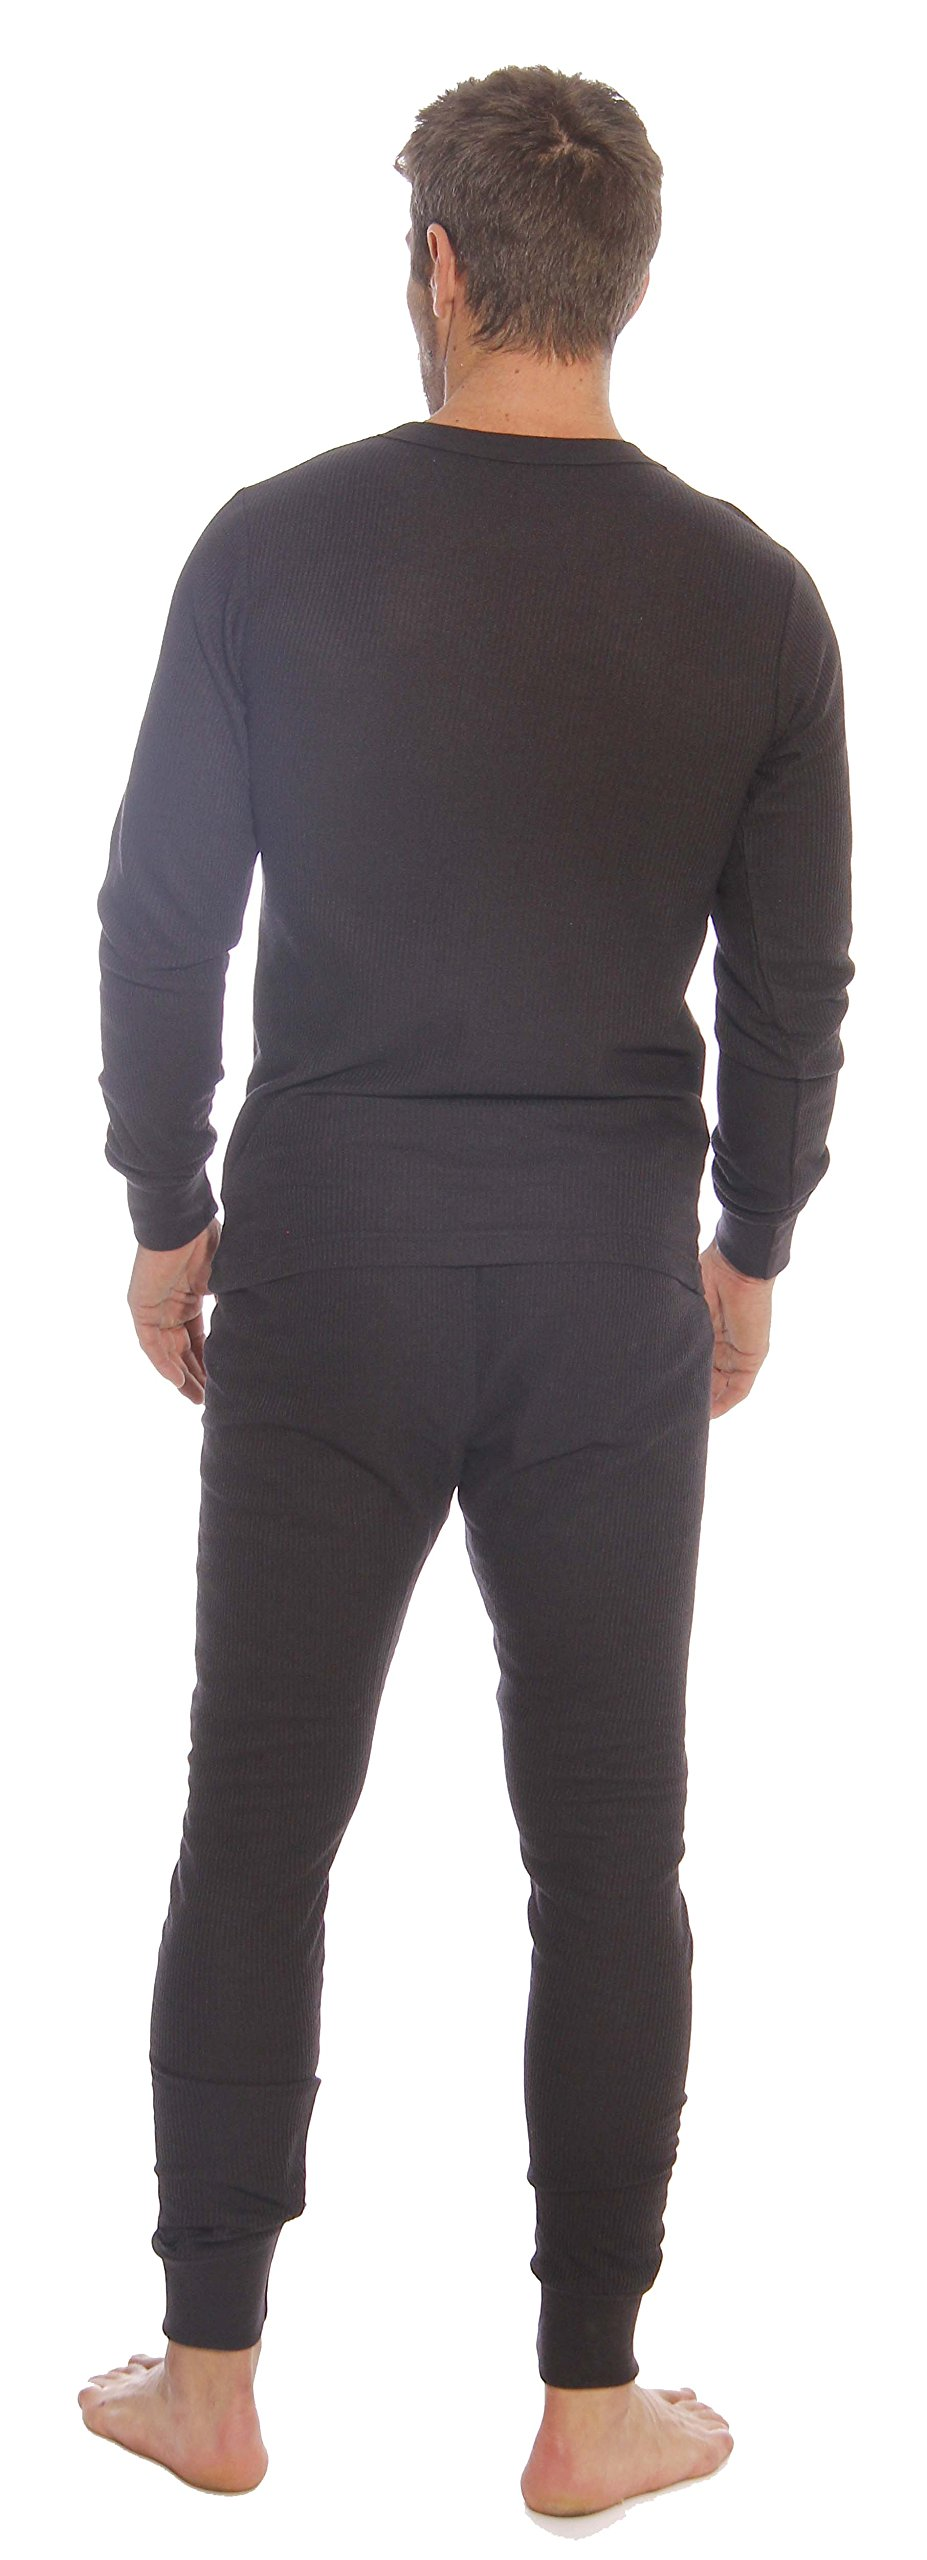 At The Buzzer Thermal Underwear Set For Men 95962-Black-XL by At The Buzzer (Image #3)